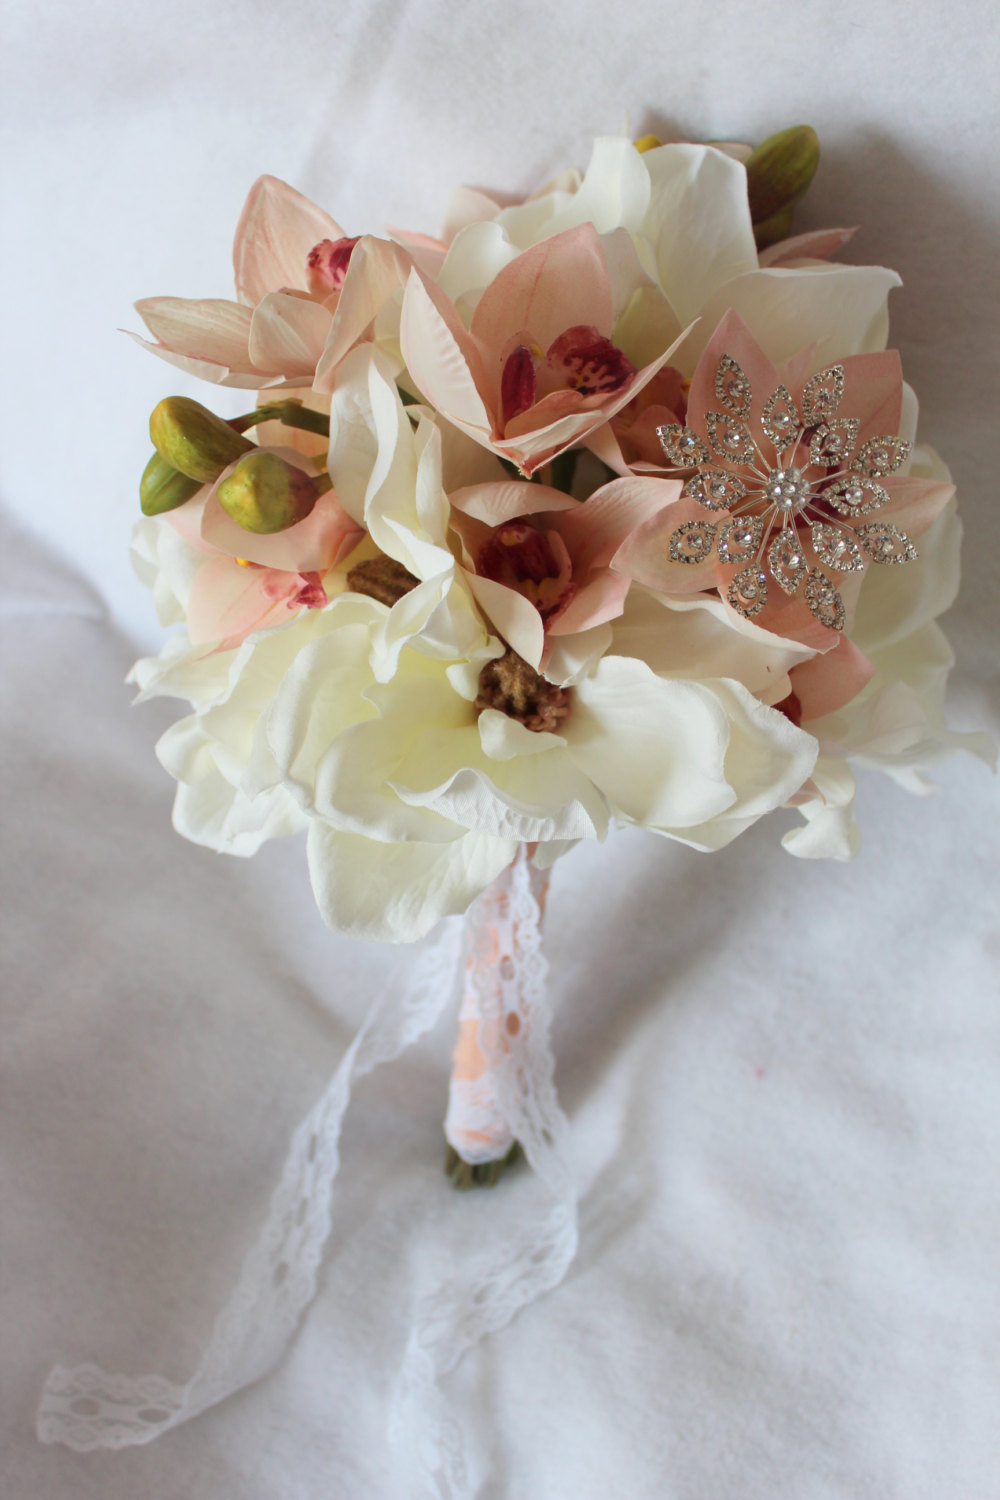 minneapolis-silk-florist-Magnolia-and-Fresh-Touch-Cymbidium-Orchid-Silk-Bouquet-in-Mauve-Coral-&-Cream-with-Jewel-Muslin-and-Lace-Accent-with-Matching-Boutonniere.jpg